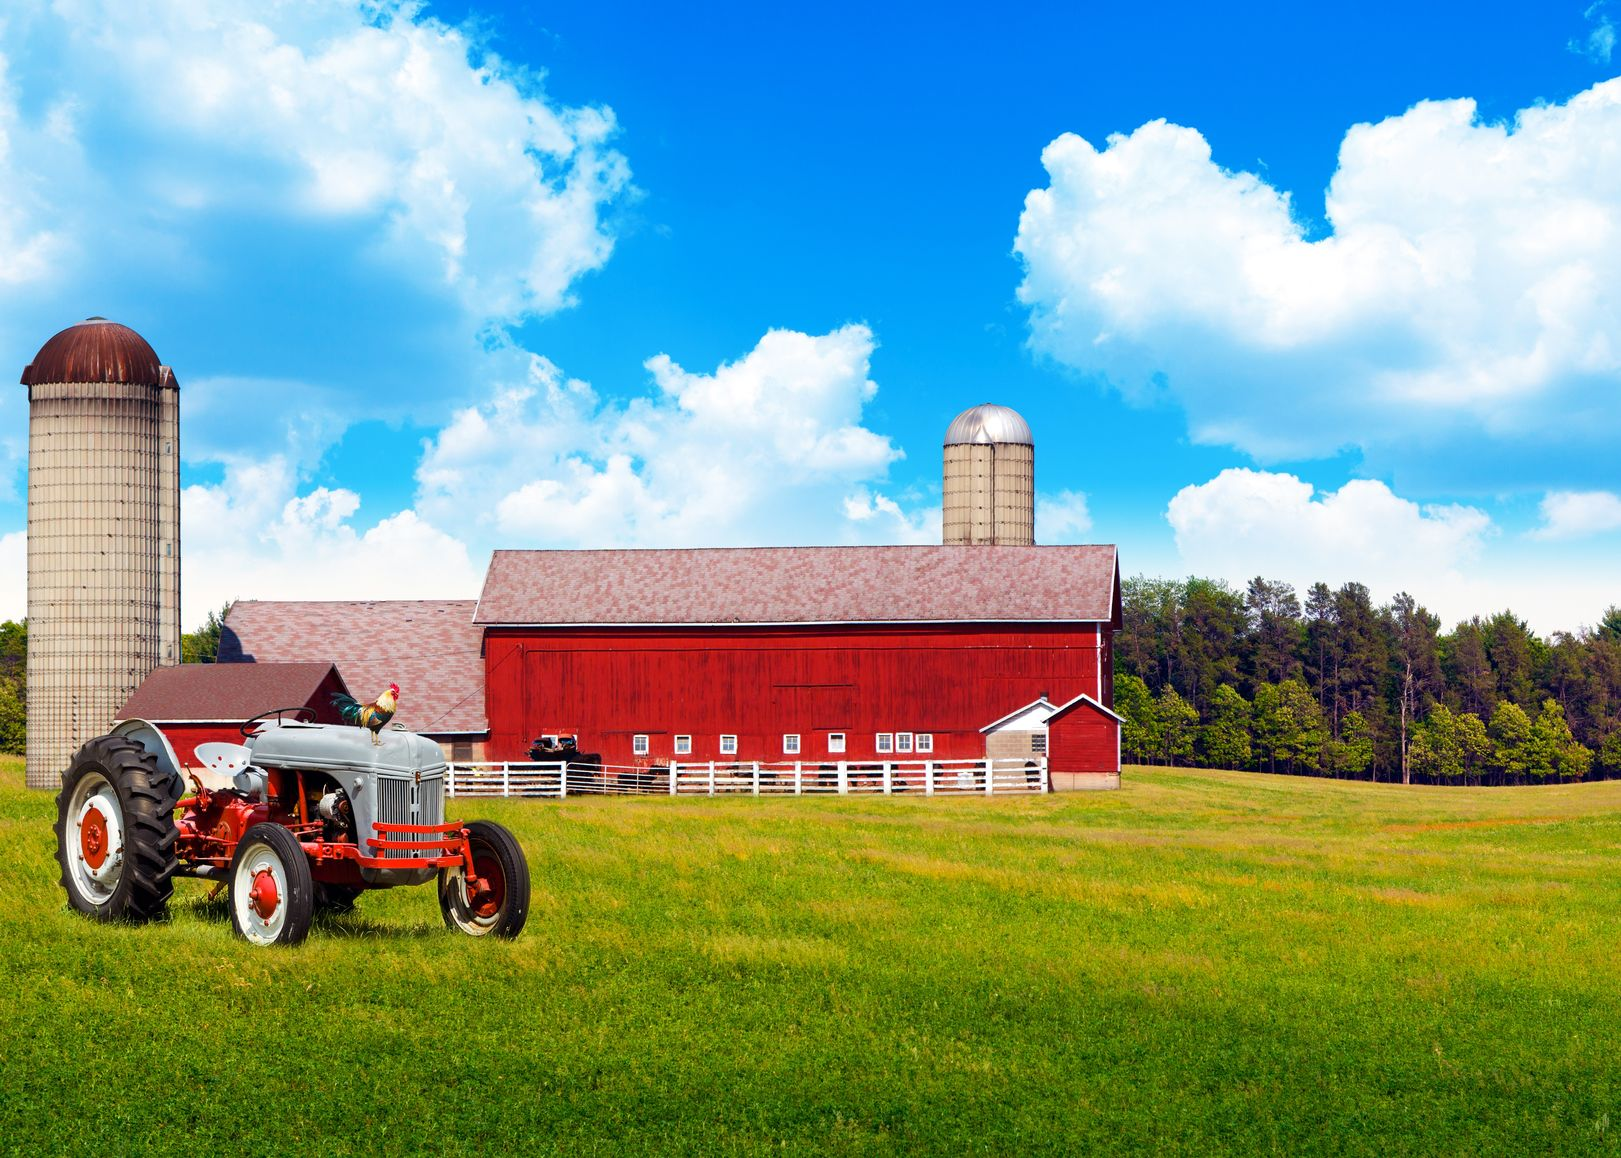 Los Angeles, CA. Farm & Ranch Insurance